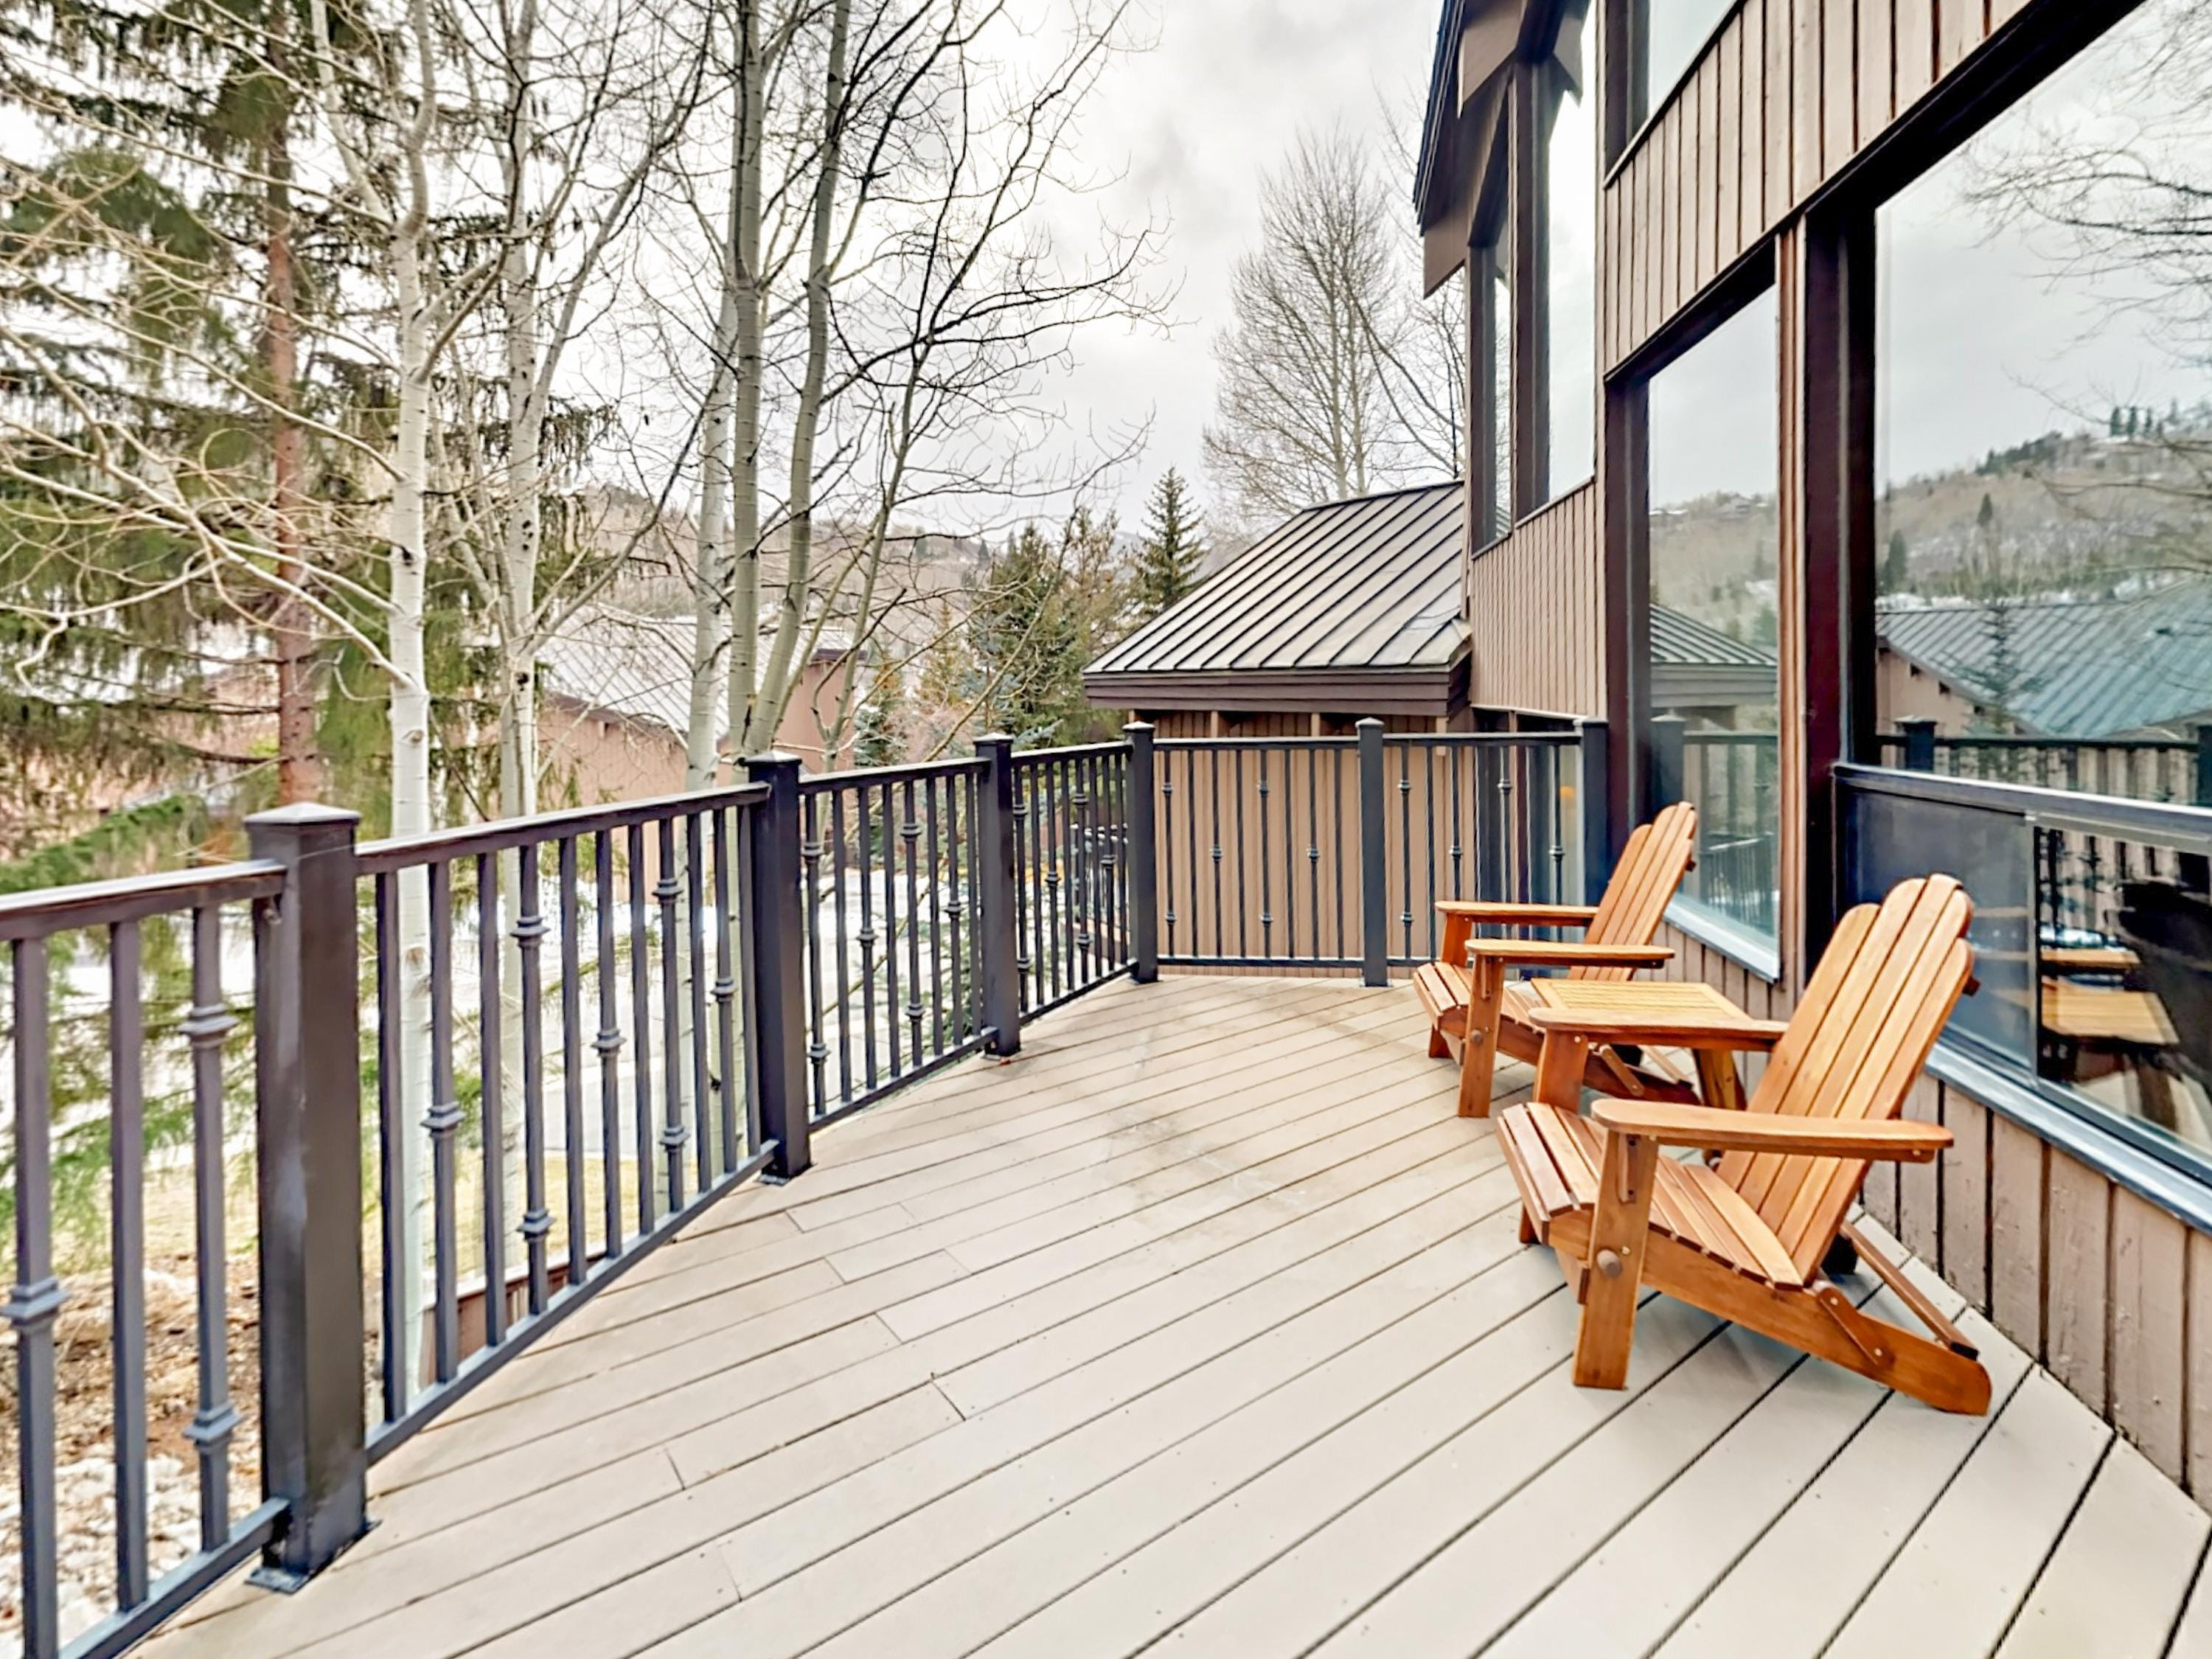 The 3-story home features 2 private balconies with views of Deer Valley and Park City.